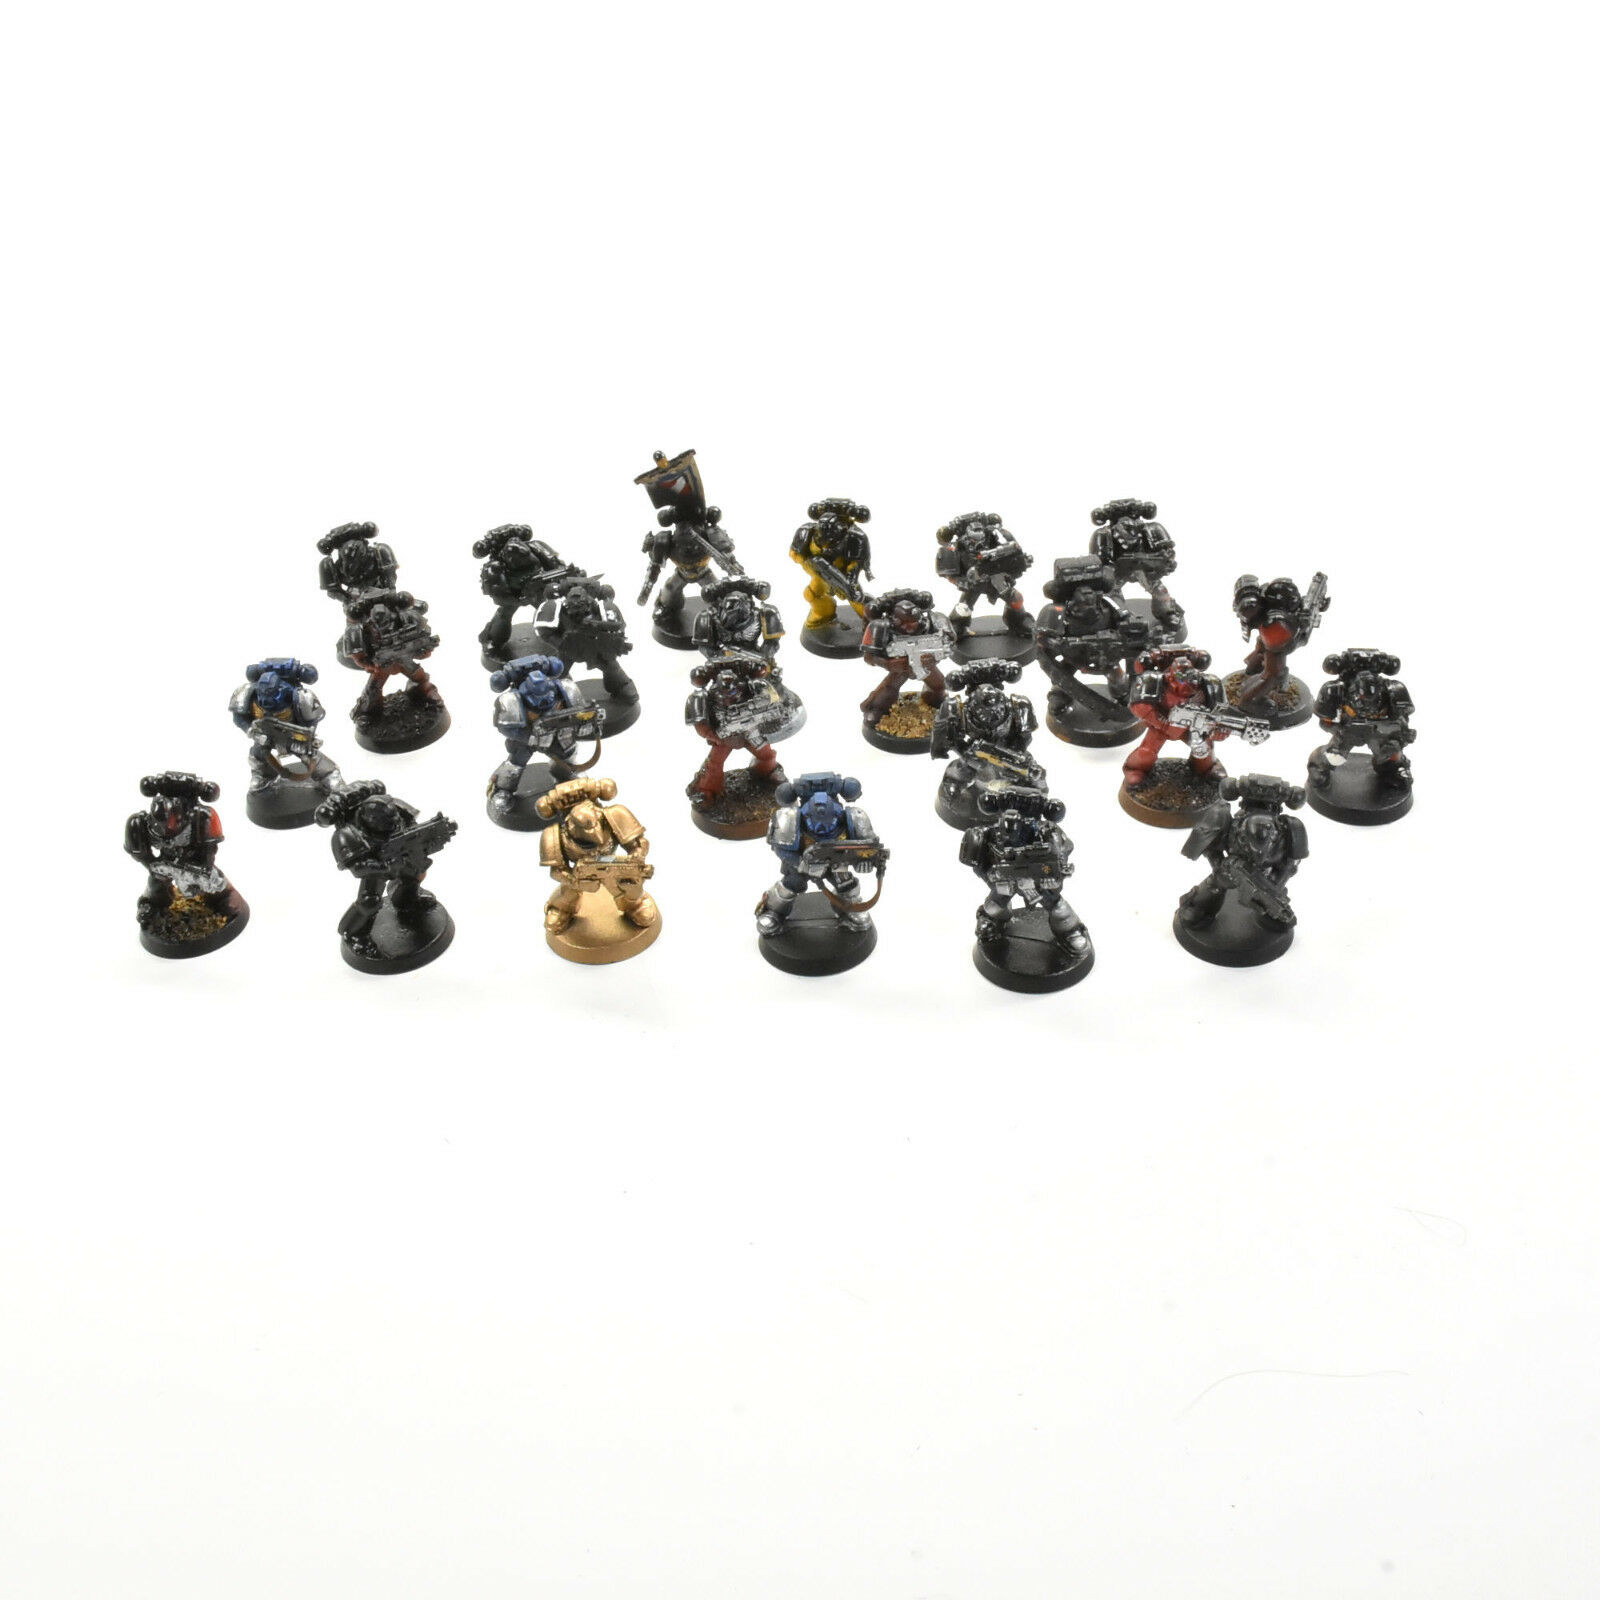 SPACE MARINES 24 tactical Marines Warhammer 40K poor condition